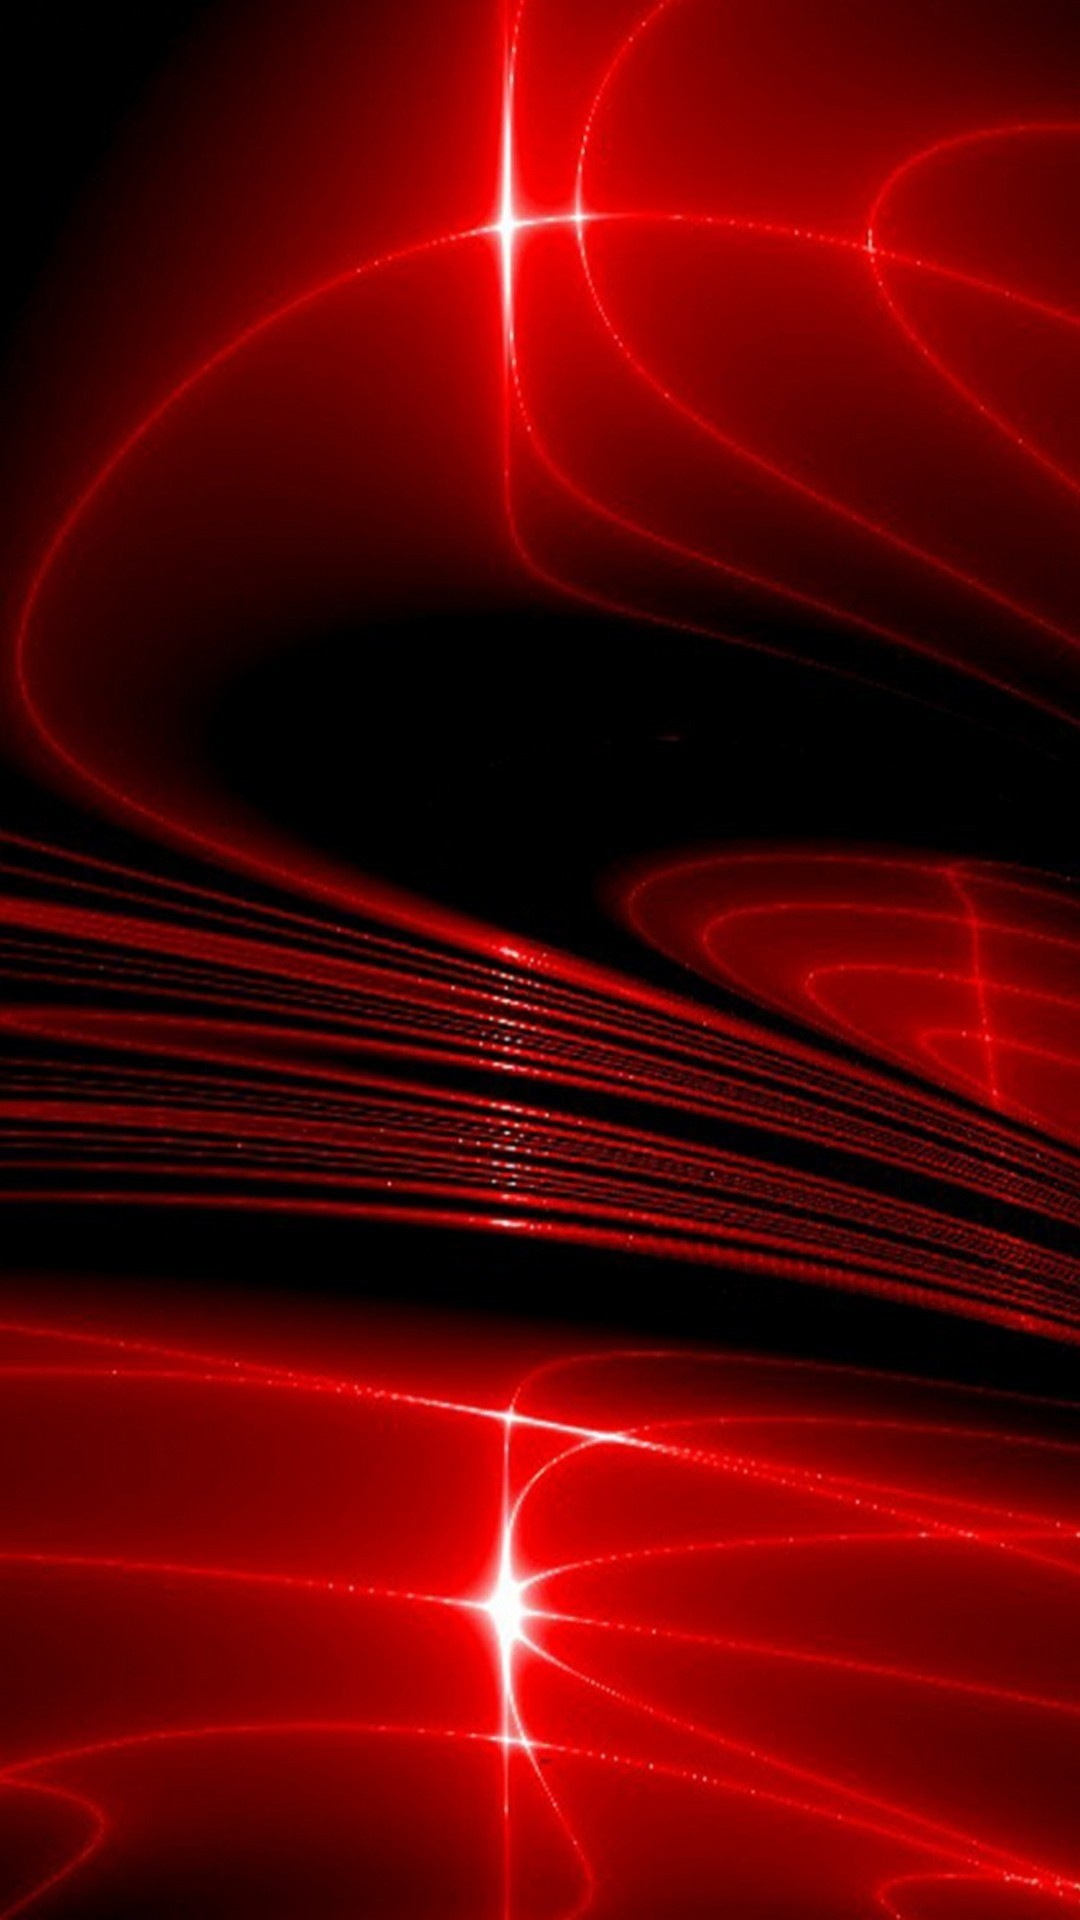 1920x1123 1920x1123 Hd Dark Abstract Wallpapers Hq Background 15 HD Wallpapers | Hdimges.